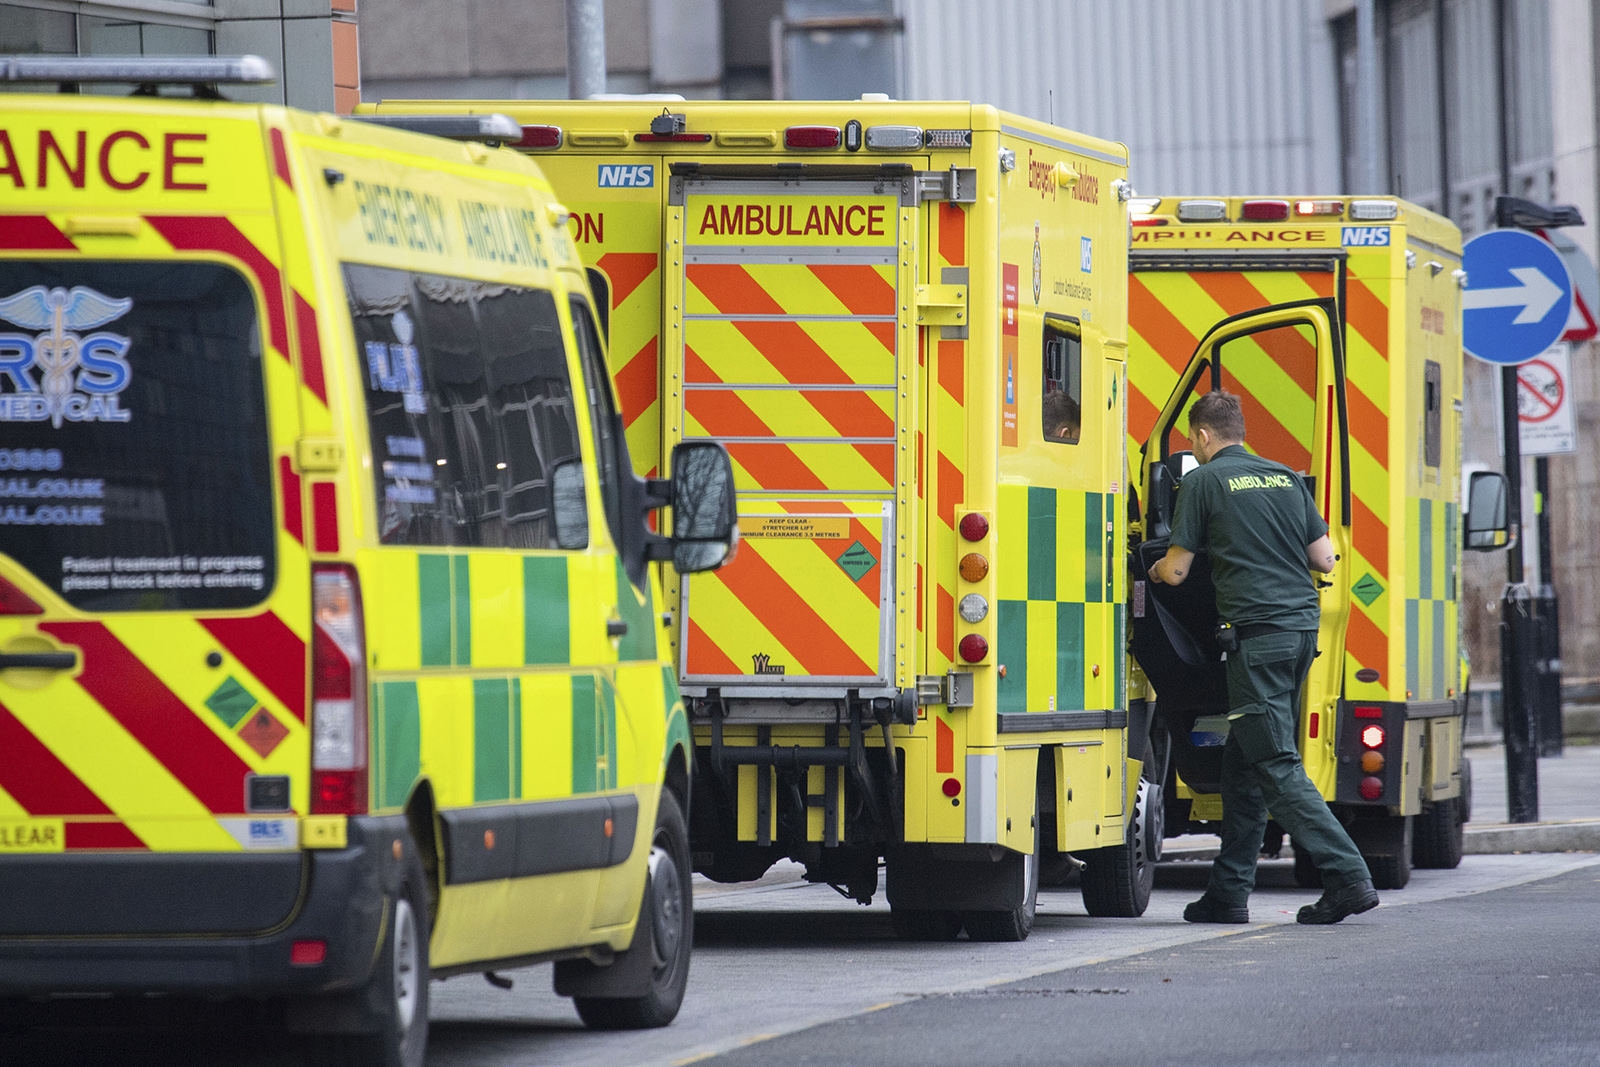 Ambulances outside the Royal London Hospital, in London on Tuesday, December 29.